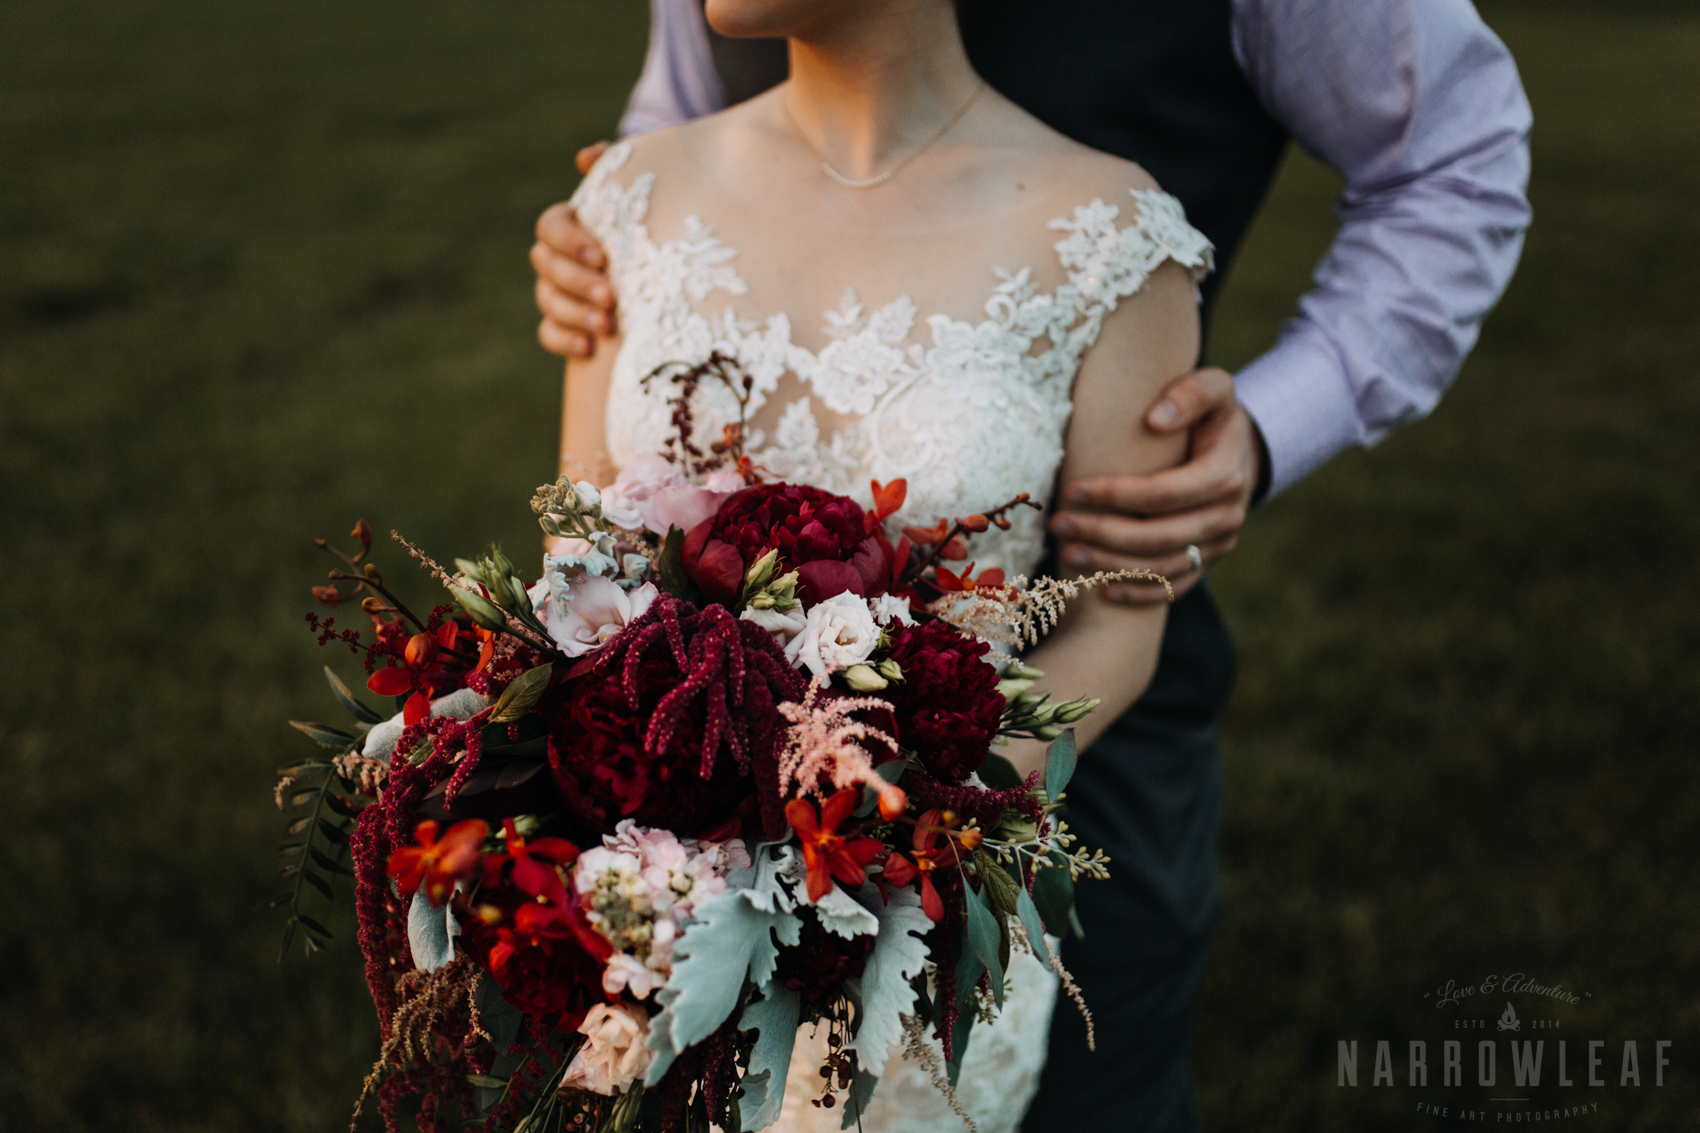 bride-groom-romantic-sunset-photos-rustys-hitching-post-event-center-new-richmond-wi-70.jpg